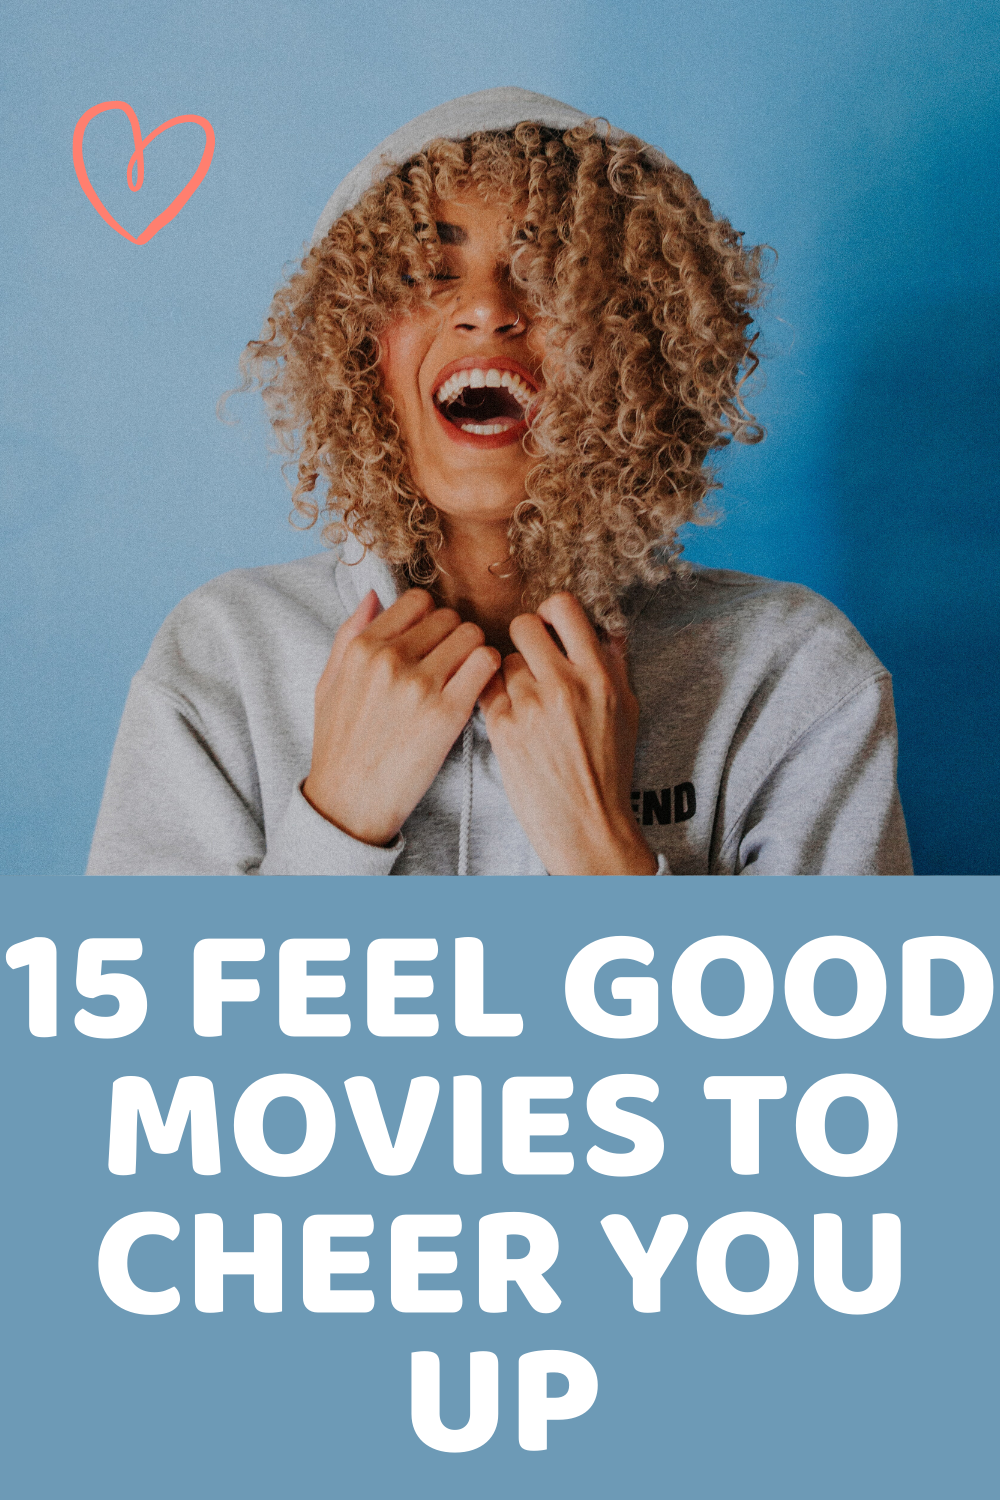 15 Feel Good Movies To Cheer You Up